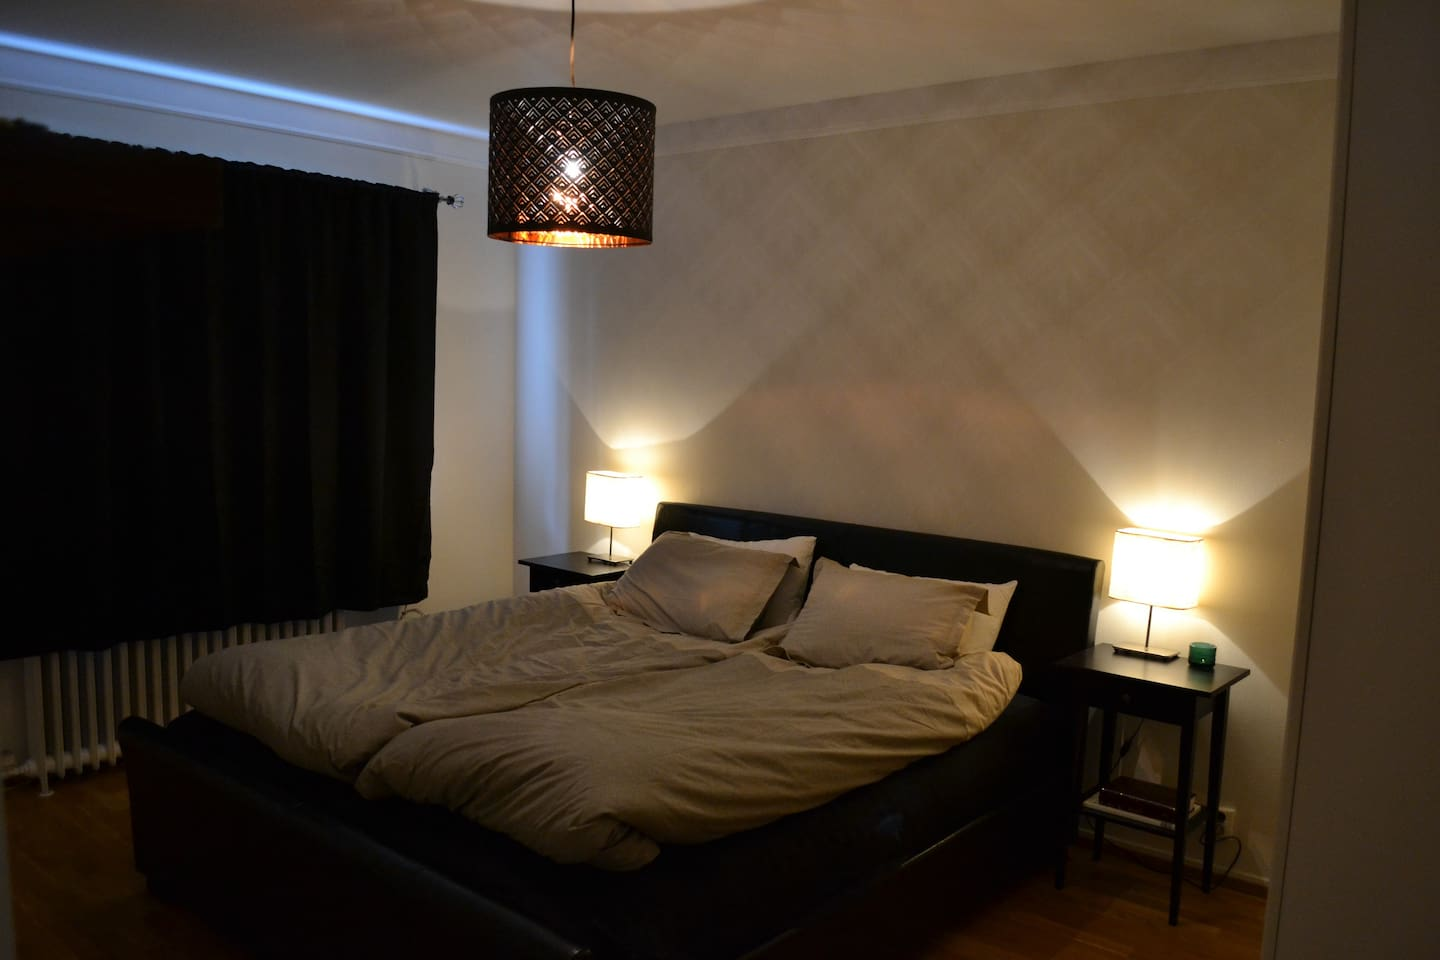 One bedroom is spacious with a queen size bed and a large closet.